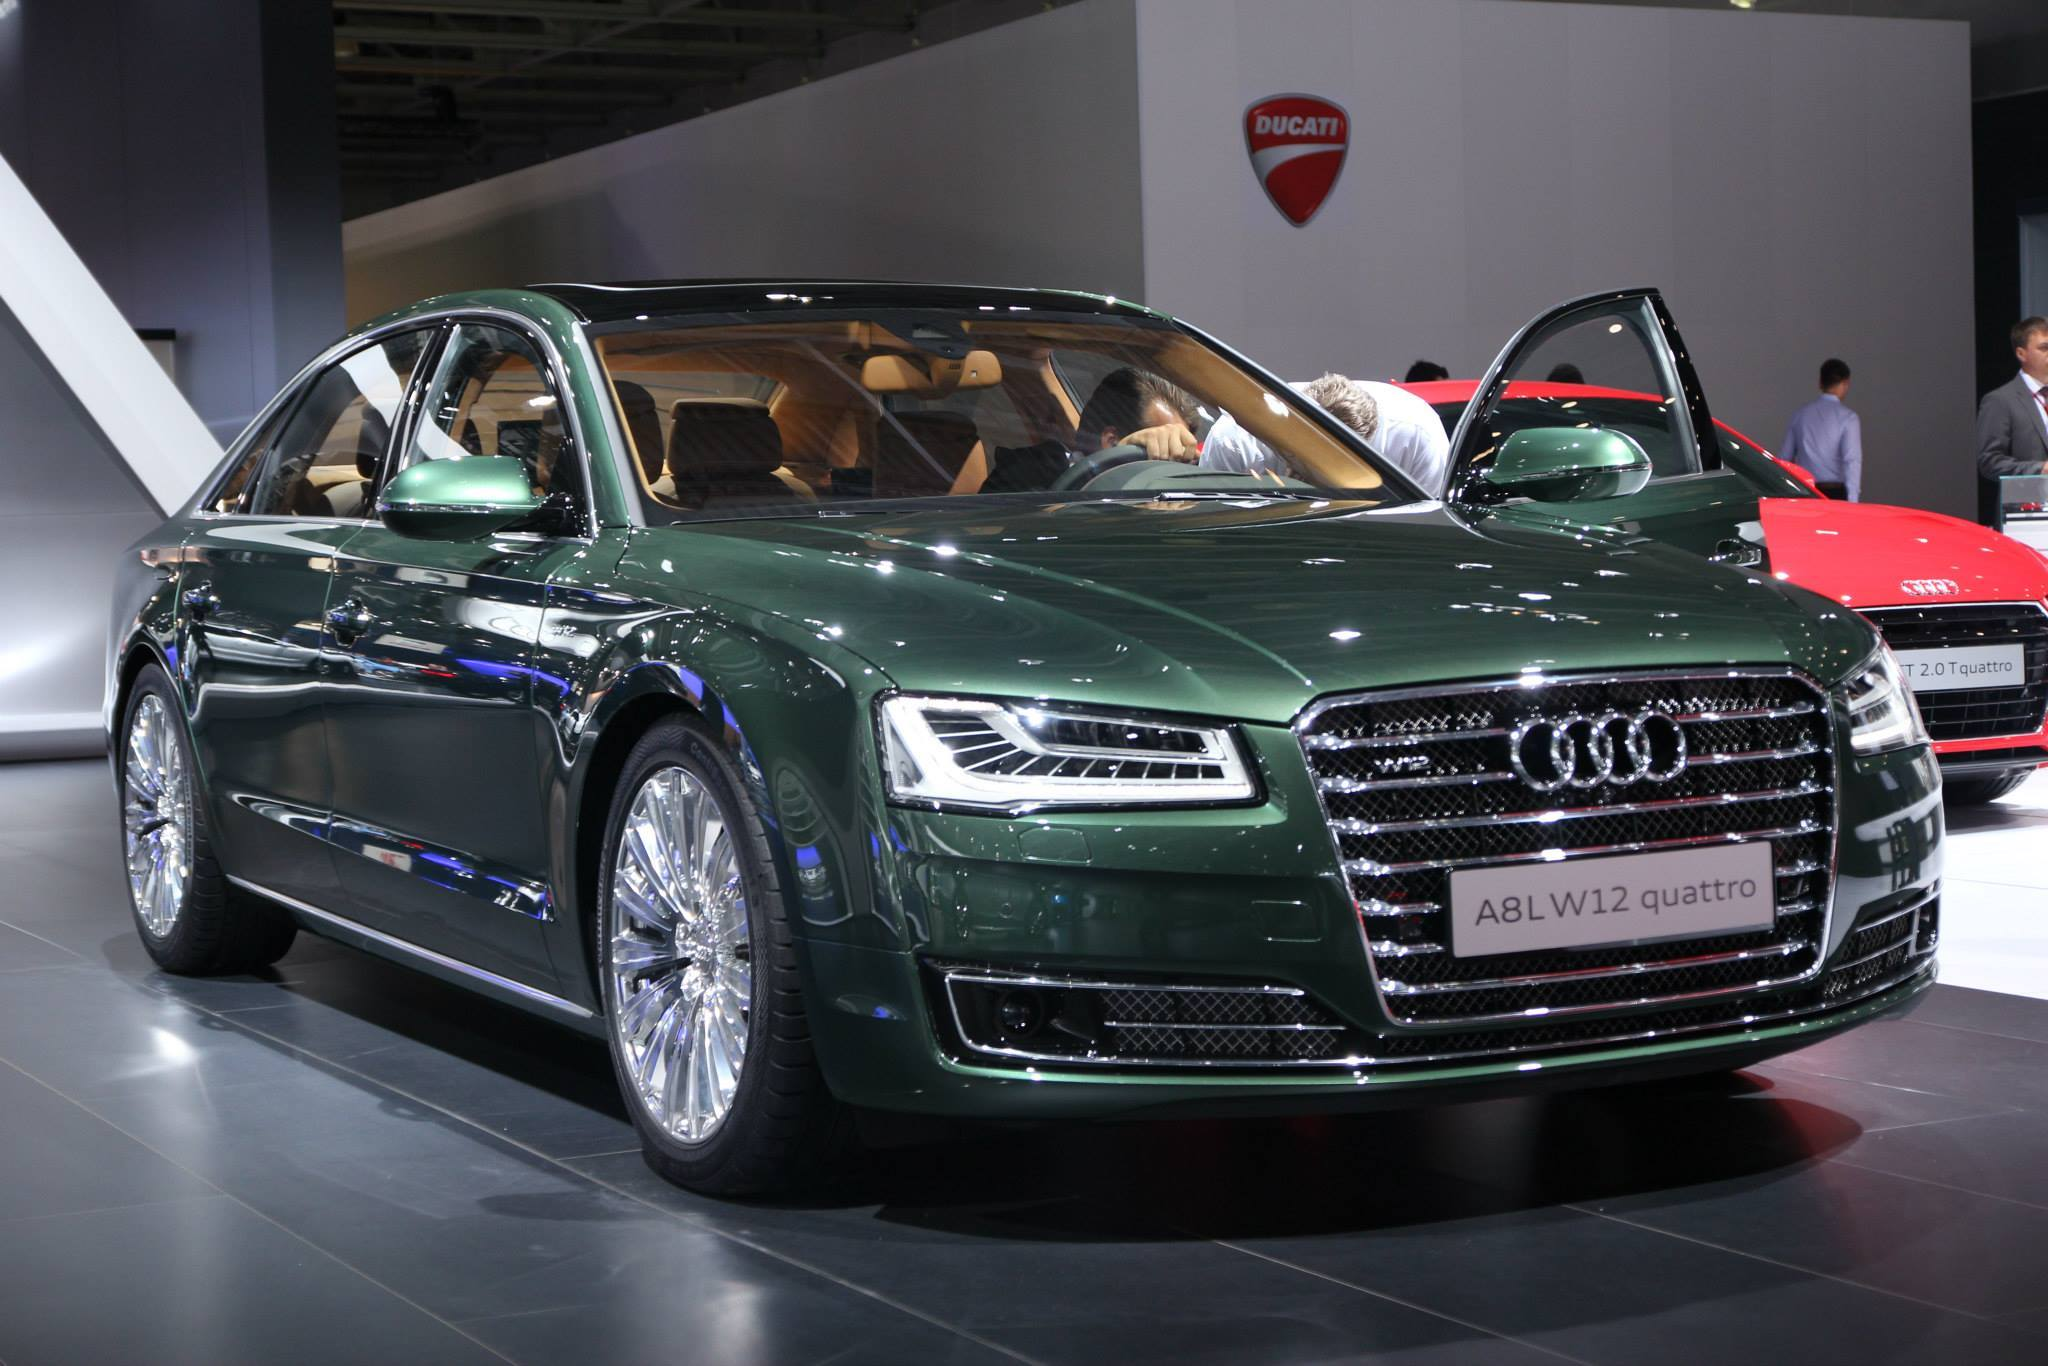 Audi AL W In Verdant Green Pearl Has Jaguar Looks Autoevolution - Audi a8 w12